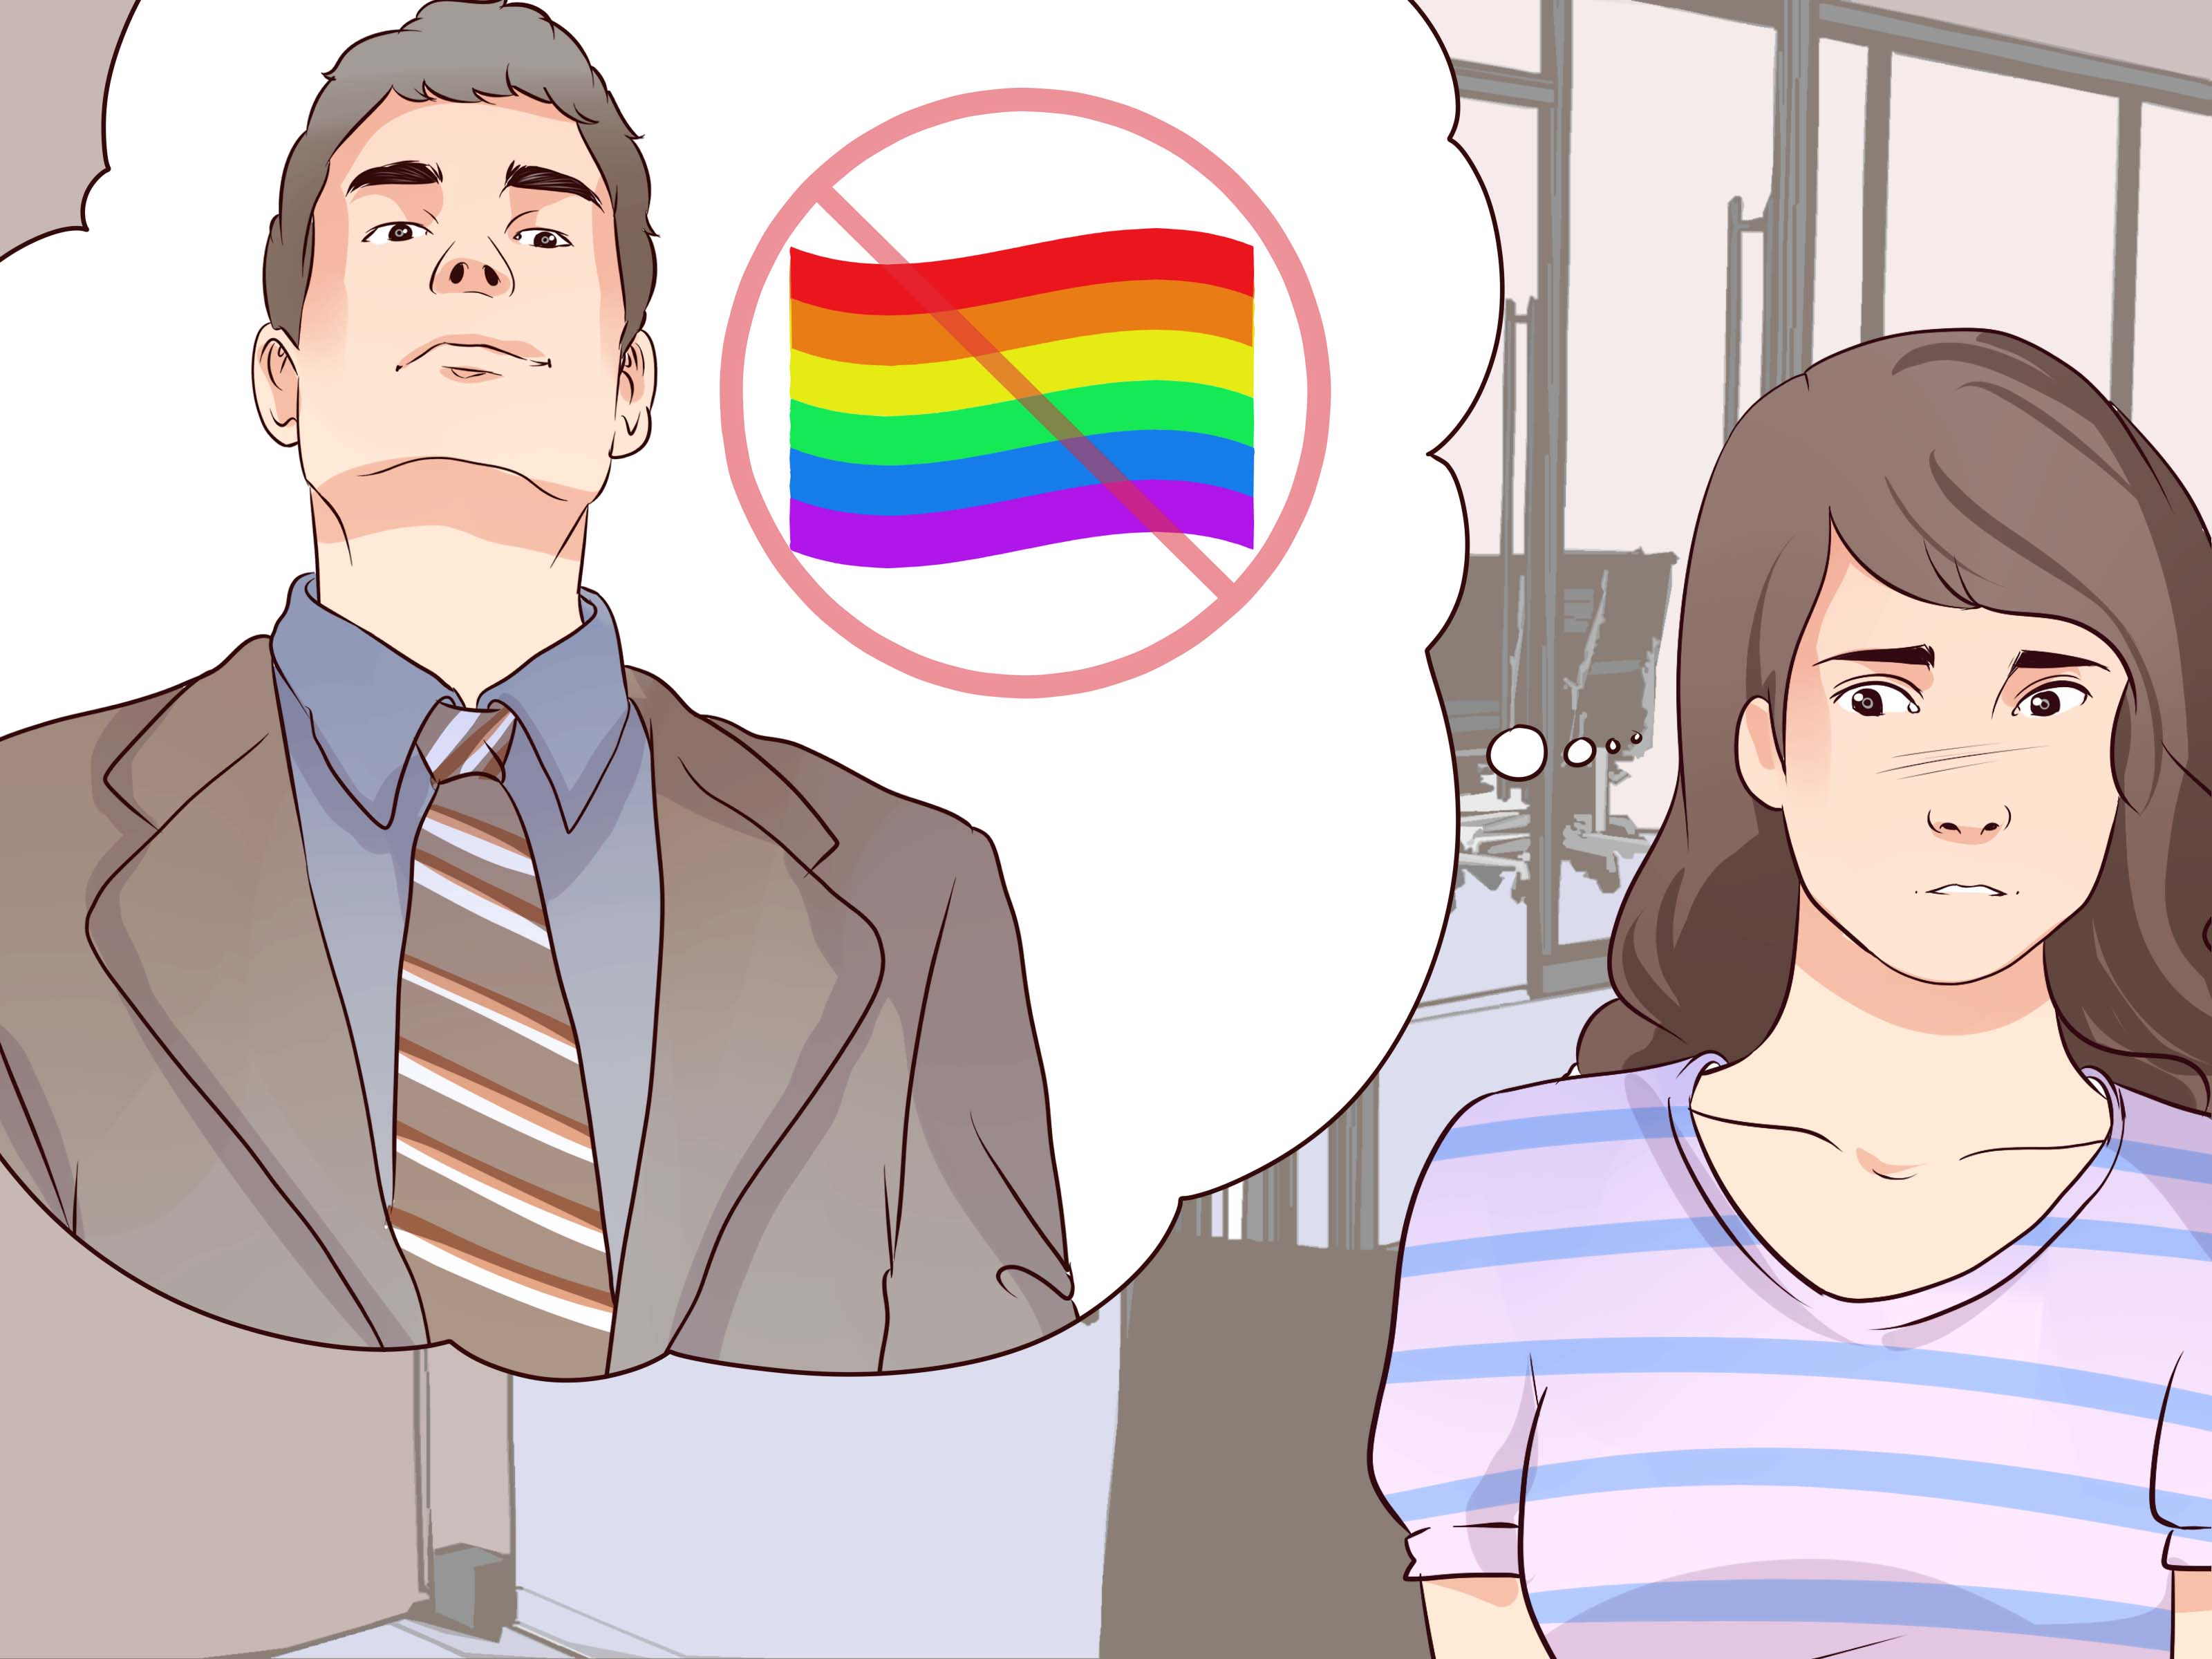 find-a-supportive-therapist-if-you-are-lesbian-gay-bisexual-or-transgender-step-12